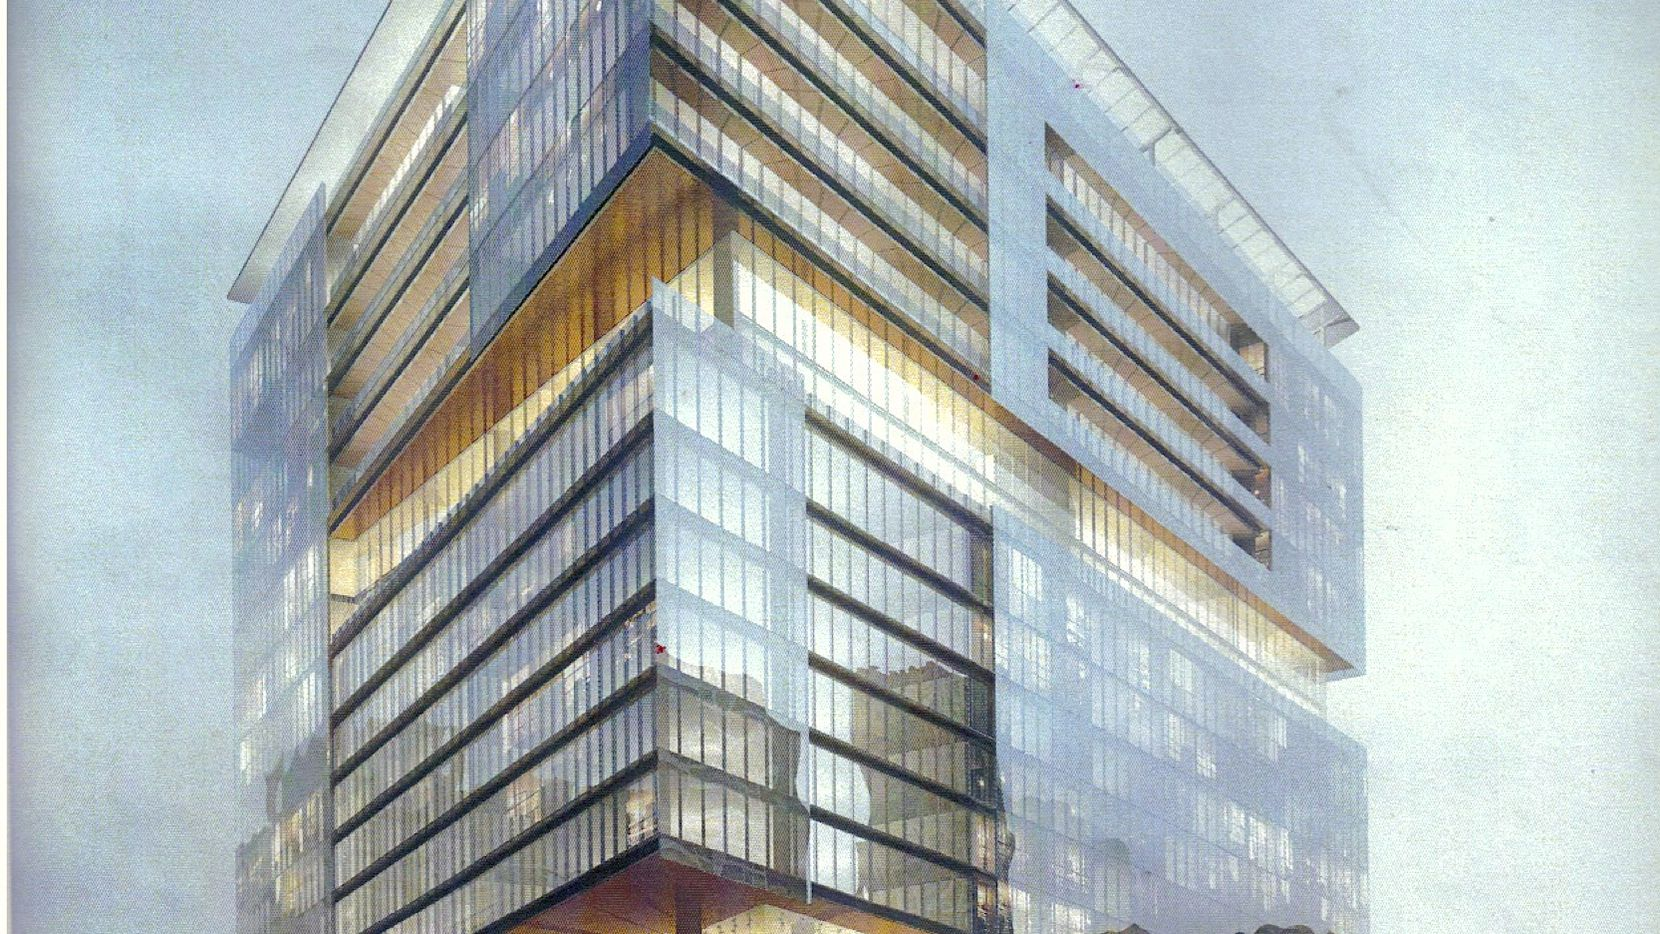 A new Virgin Hotel planned for Dallas' Design District will open in 2018.